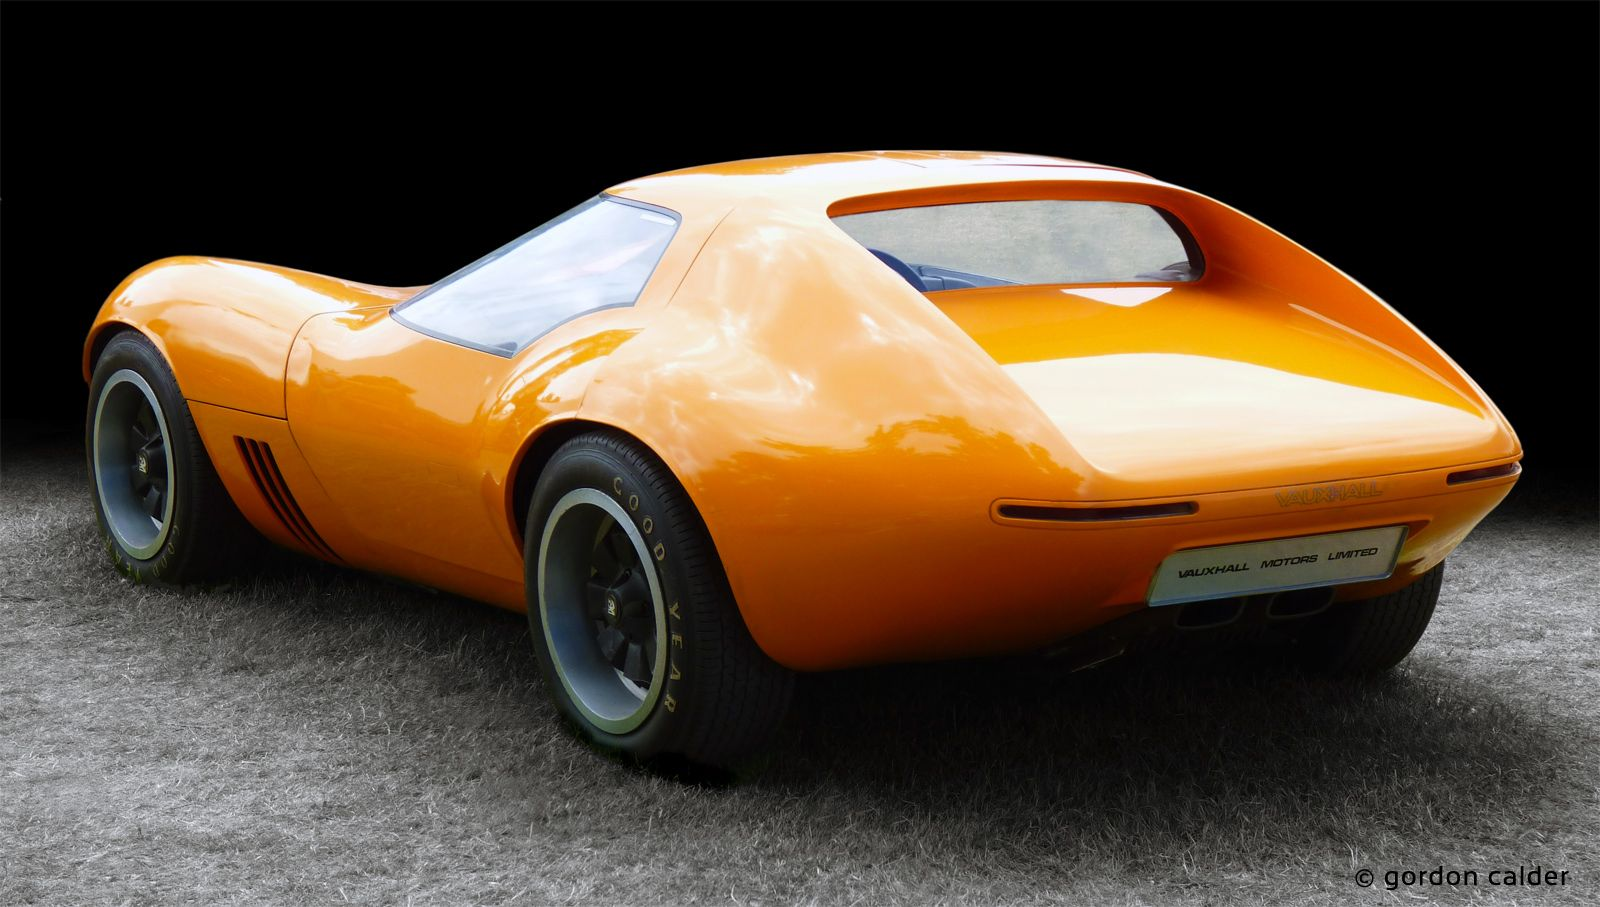 Rare Orange 1960 S British Sports Cars With Images Concept Cars